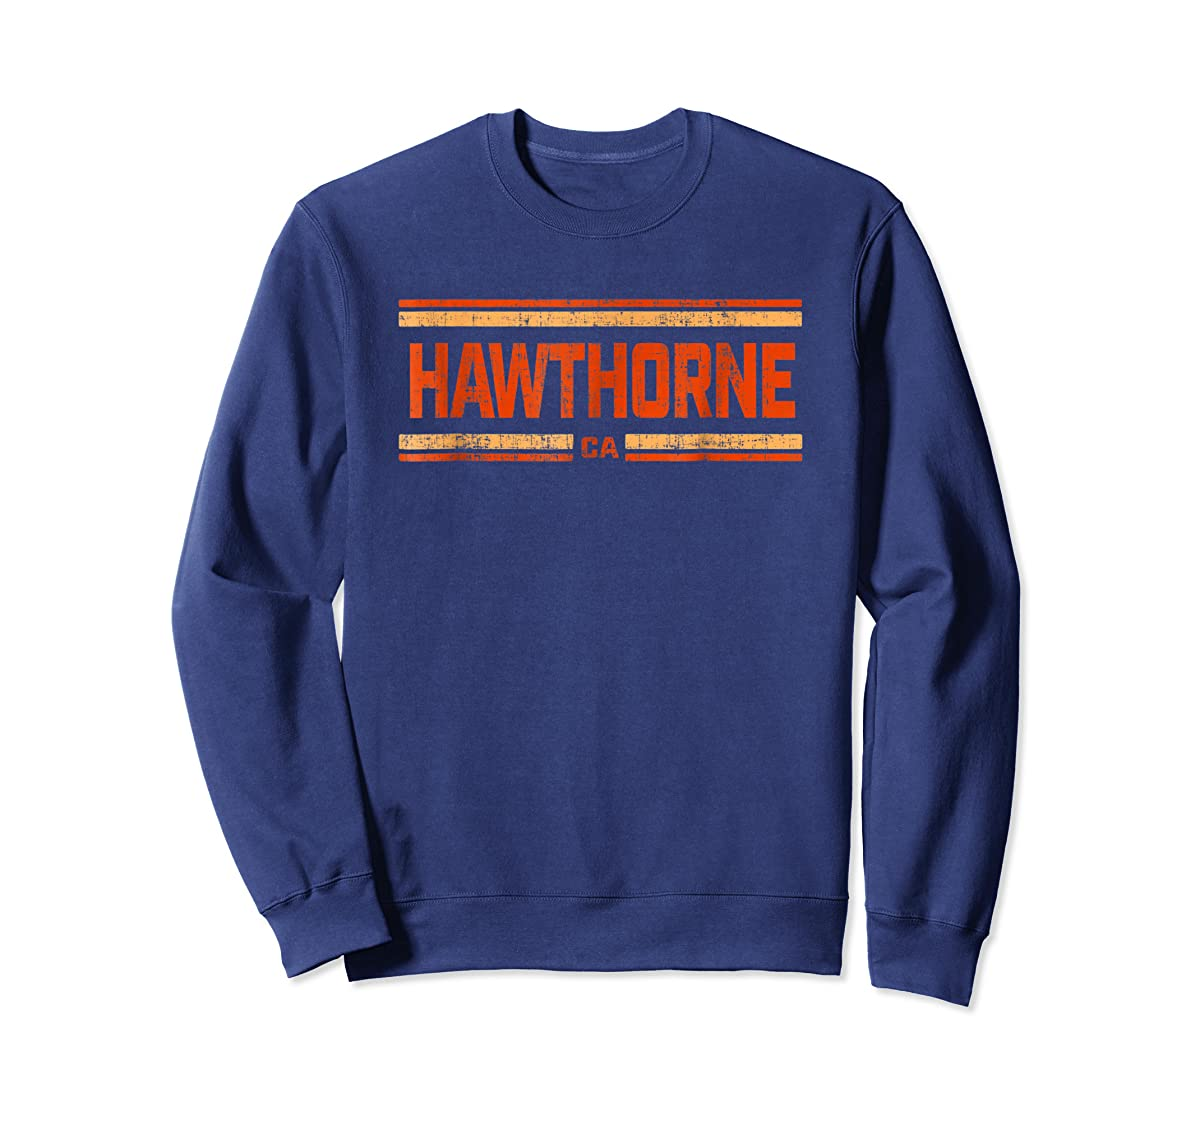 Retro Vintage Hawthorne CA Distressed T-Shirt-Sweatshirt-Navy